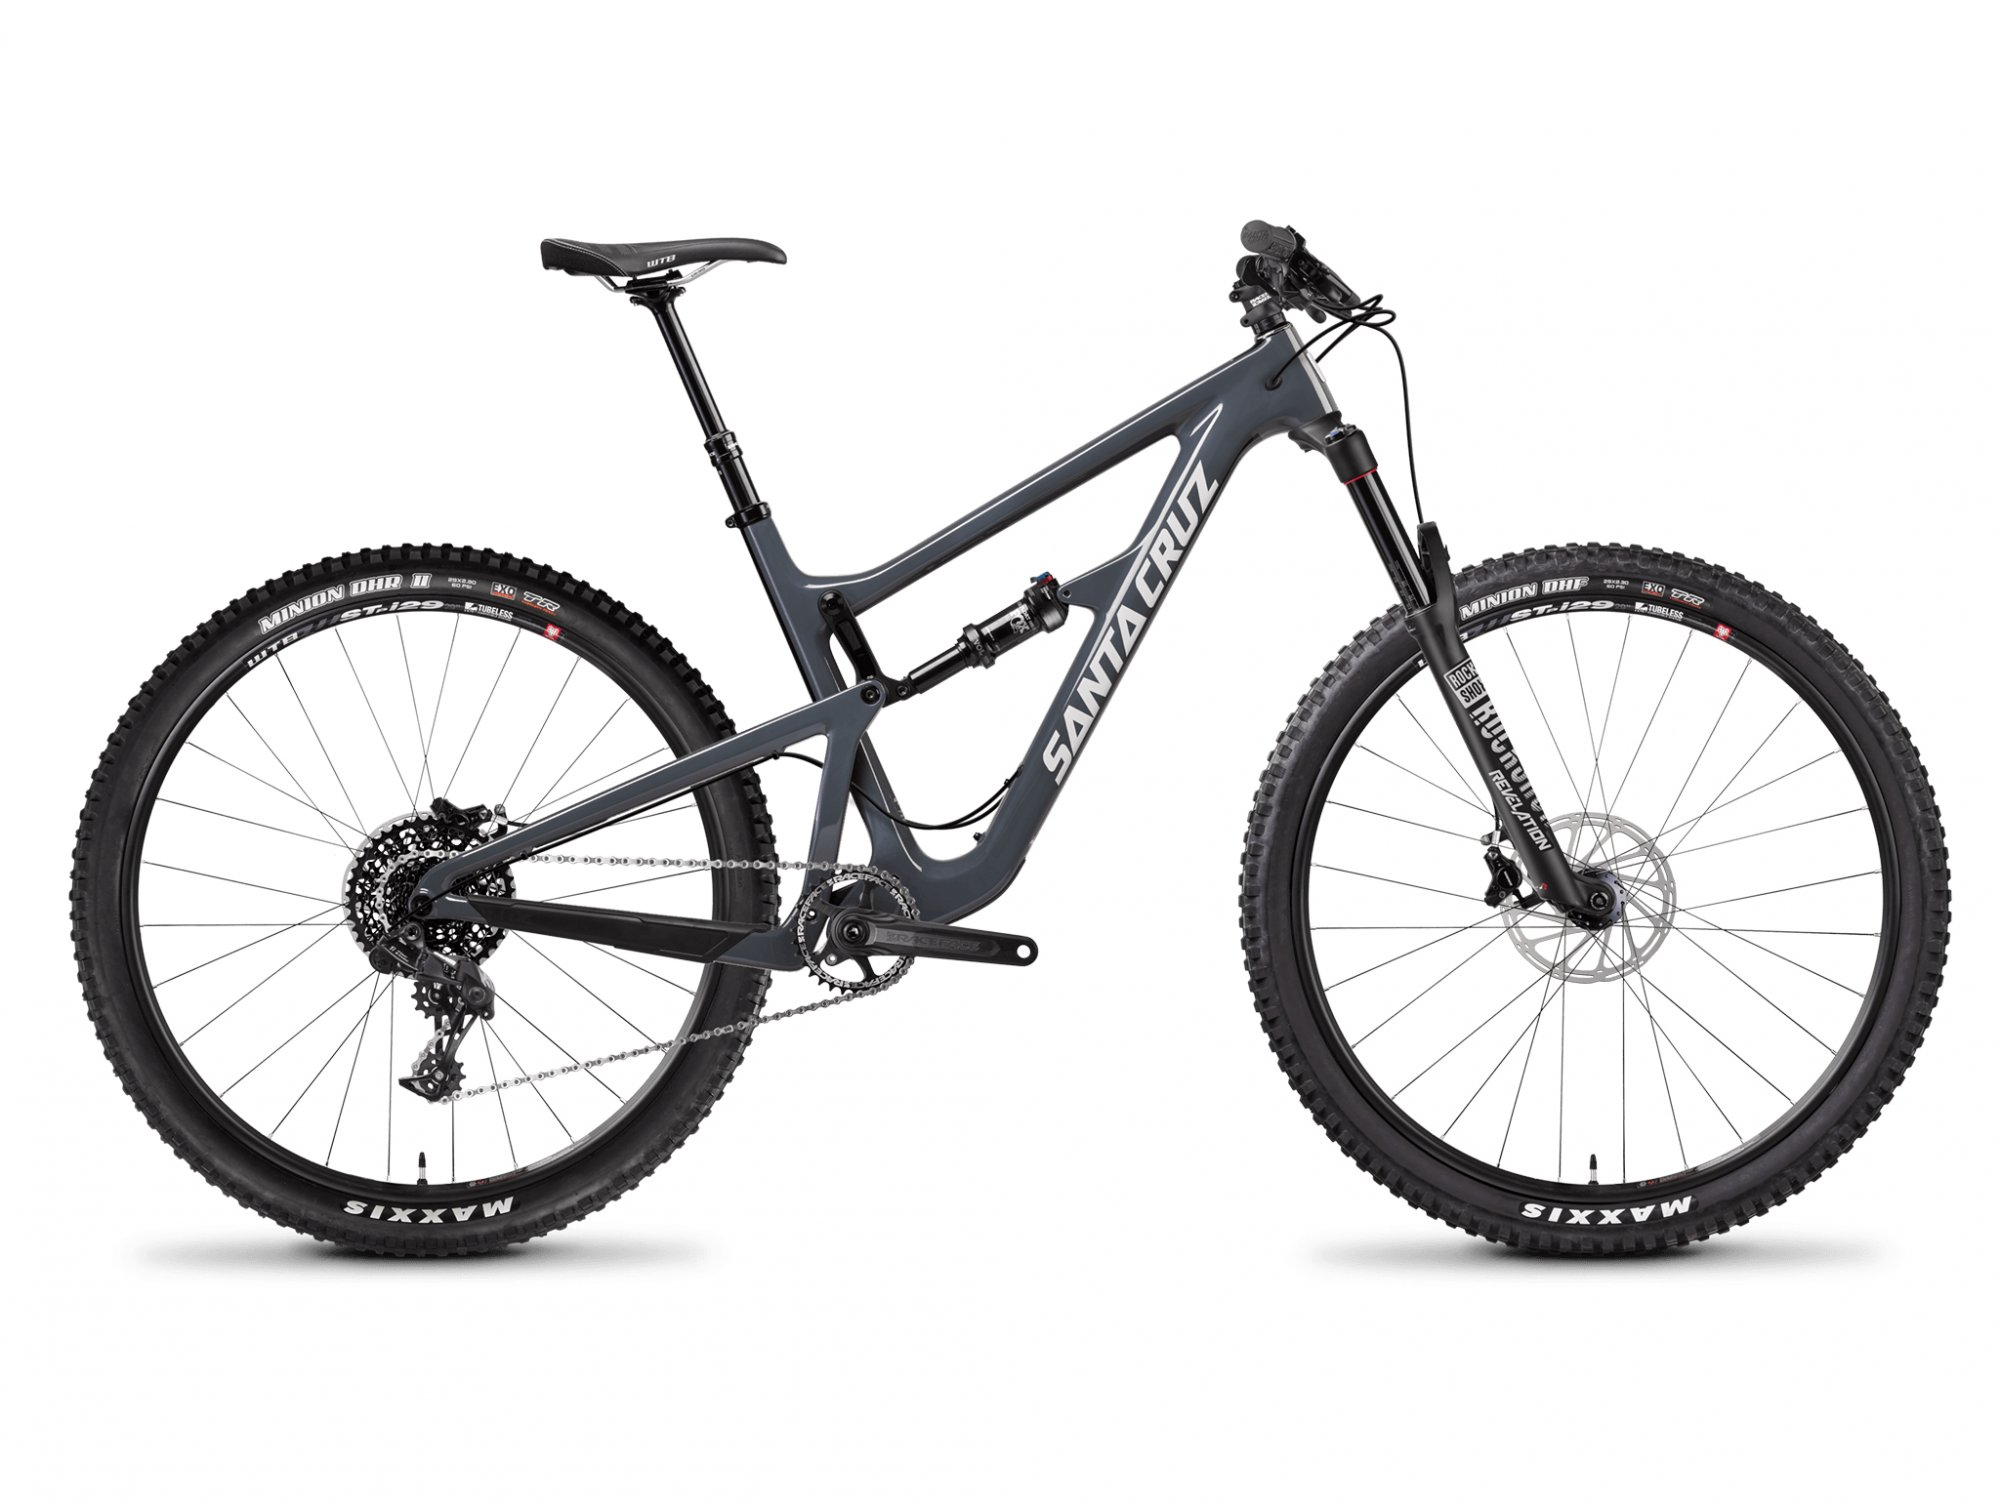 2018 Santa Cruz Hightower LT S Kit - Gloss Slate Grey